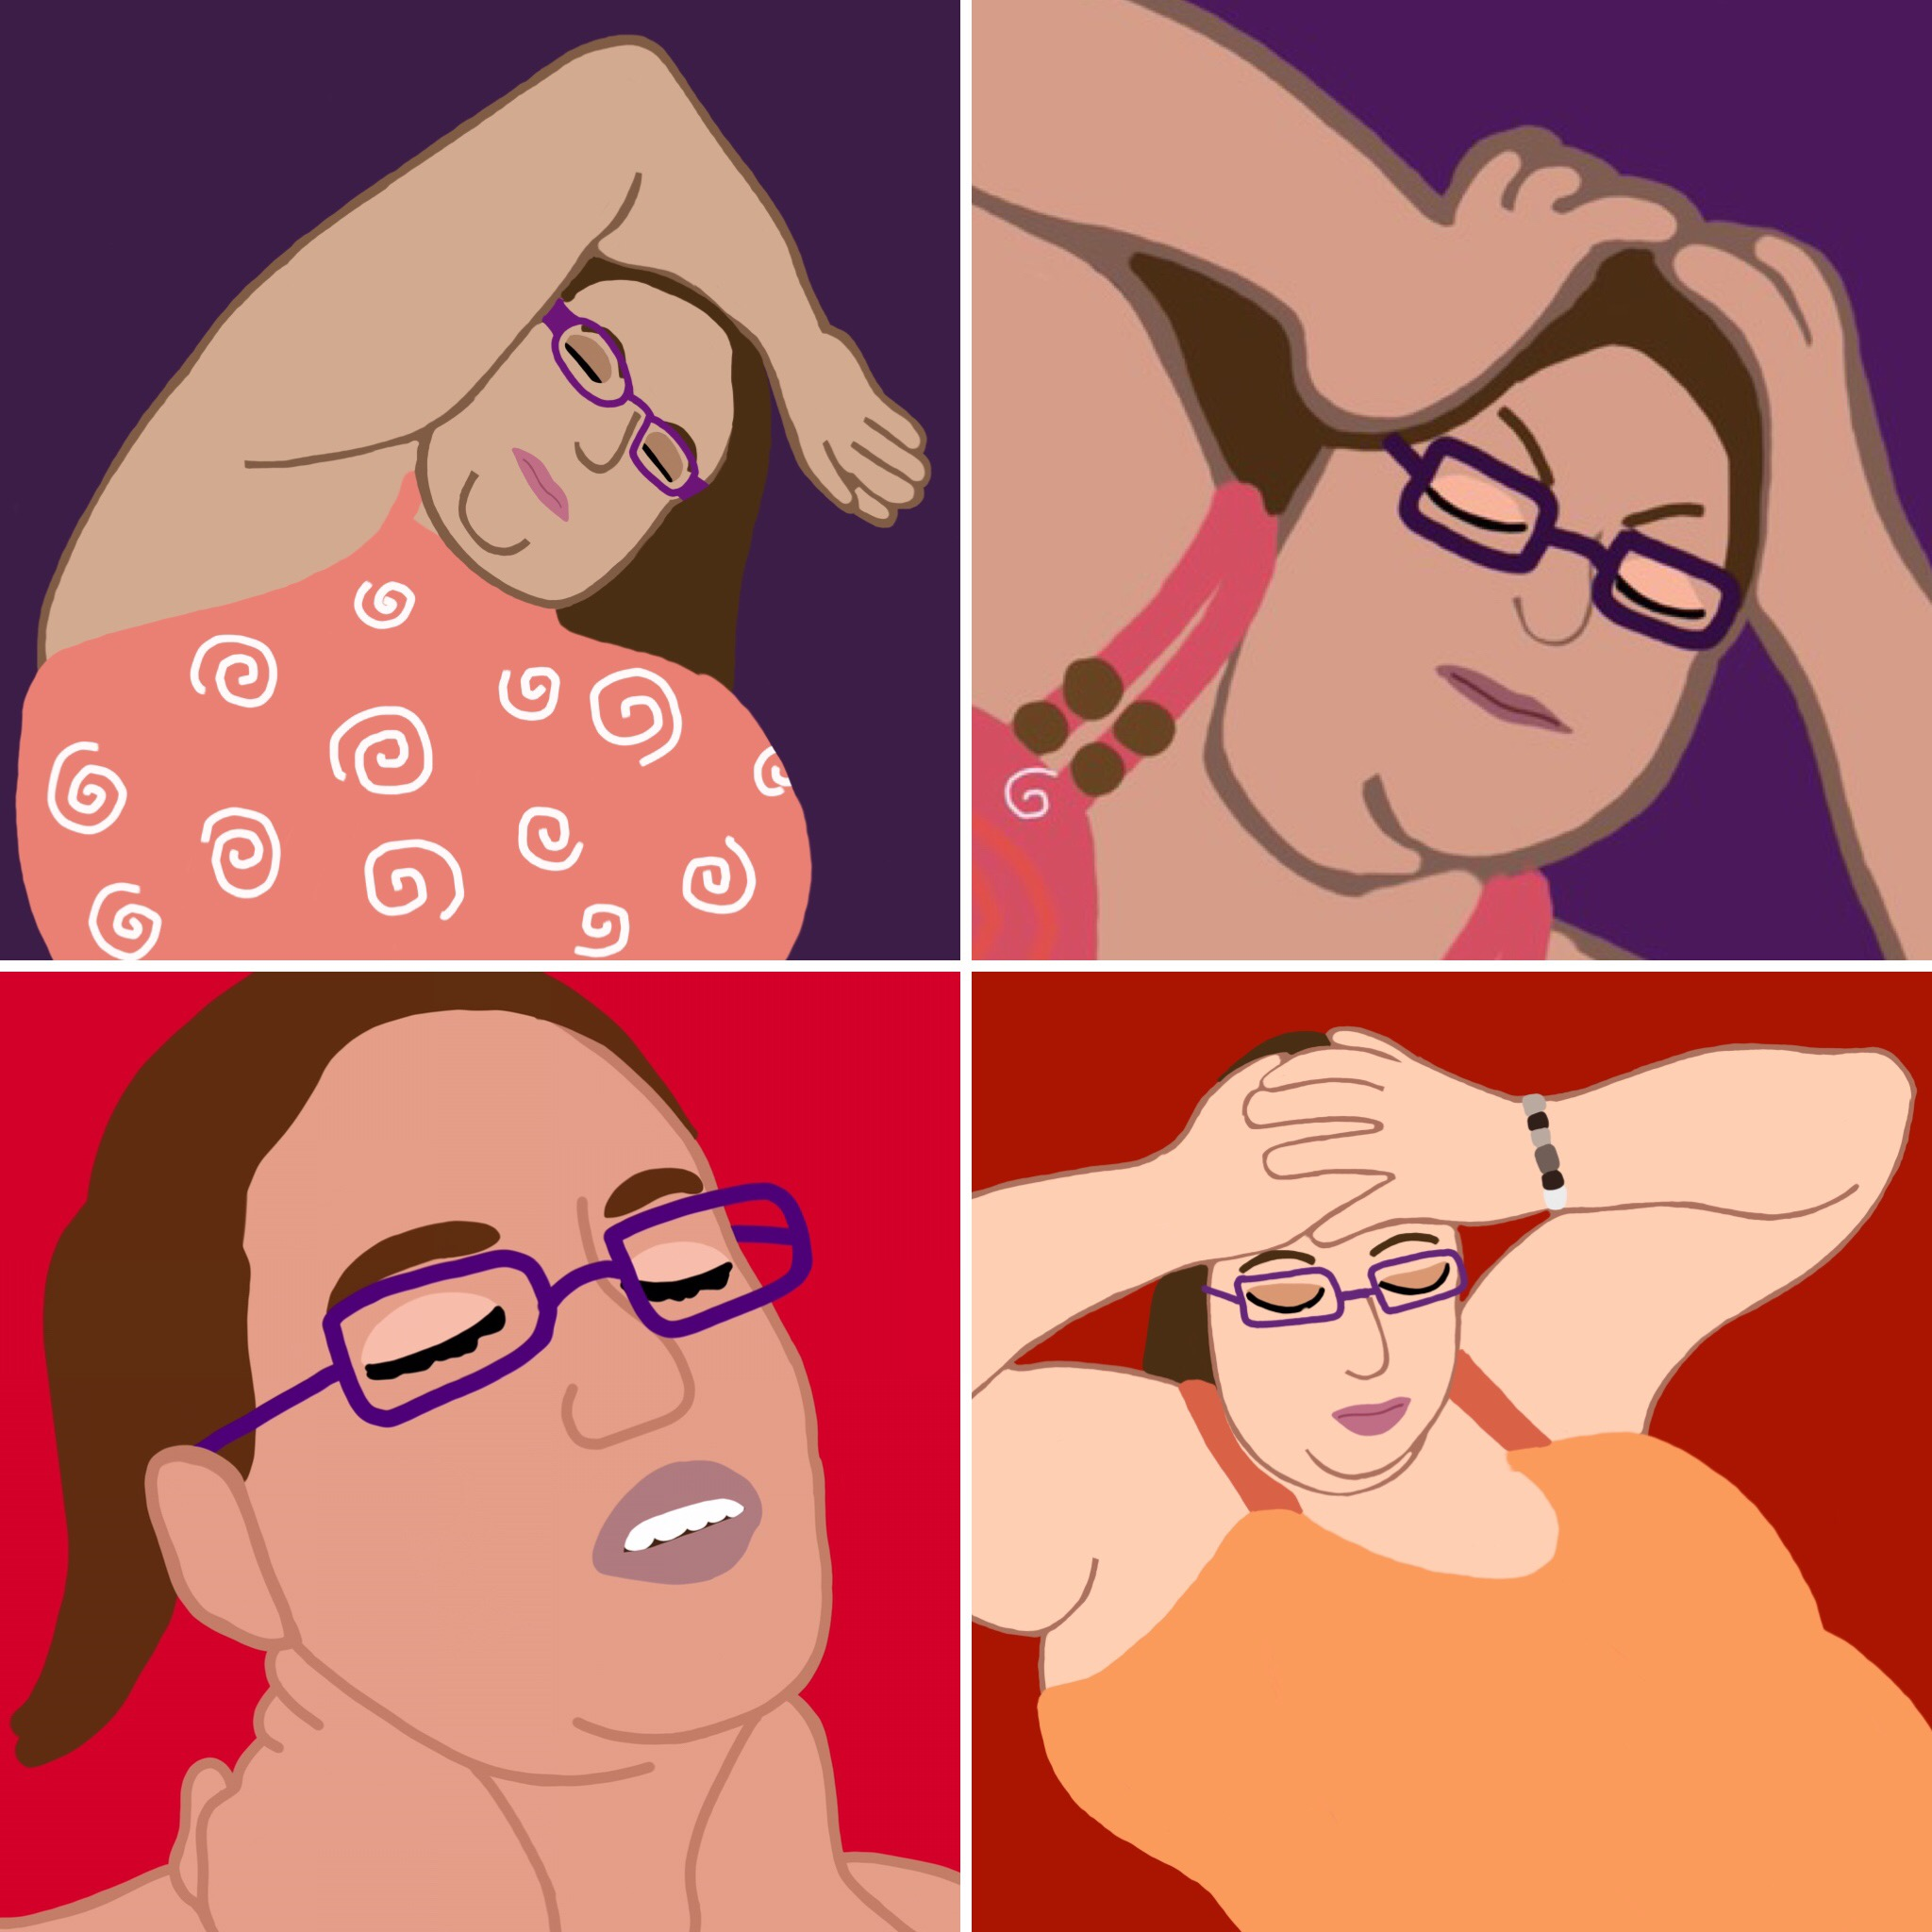 Four images in a collage of a woman struggling in pain.